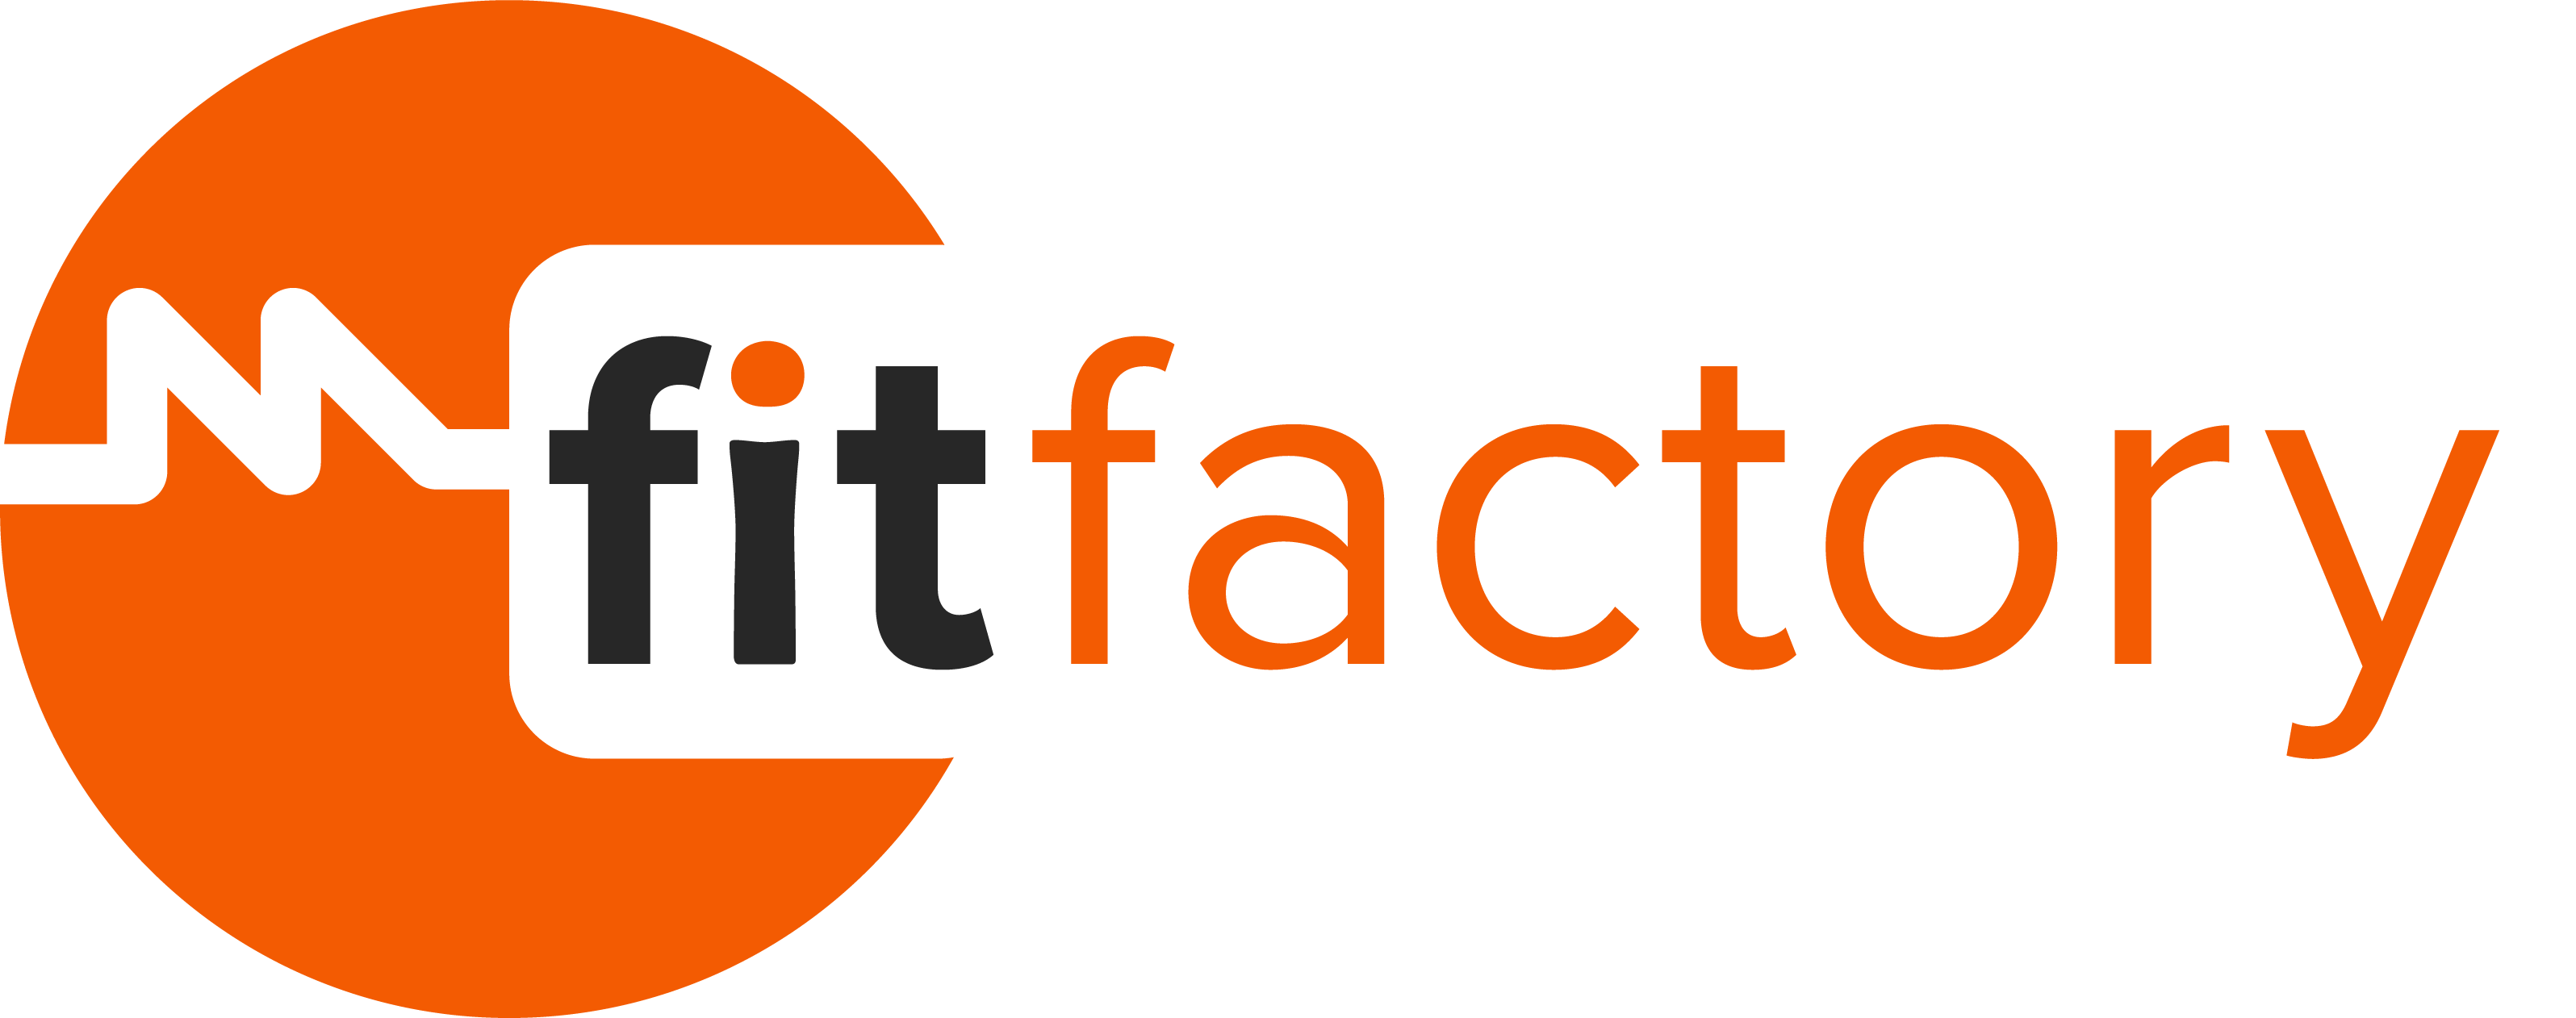 Fitfactory Technology